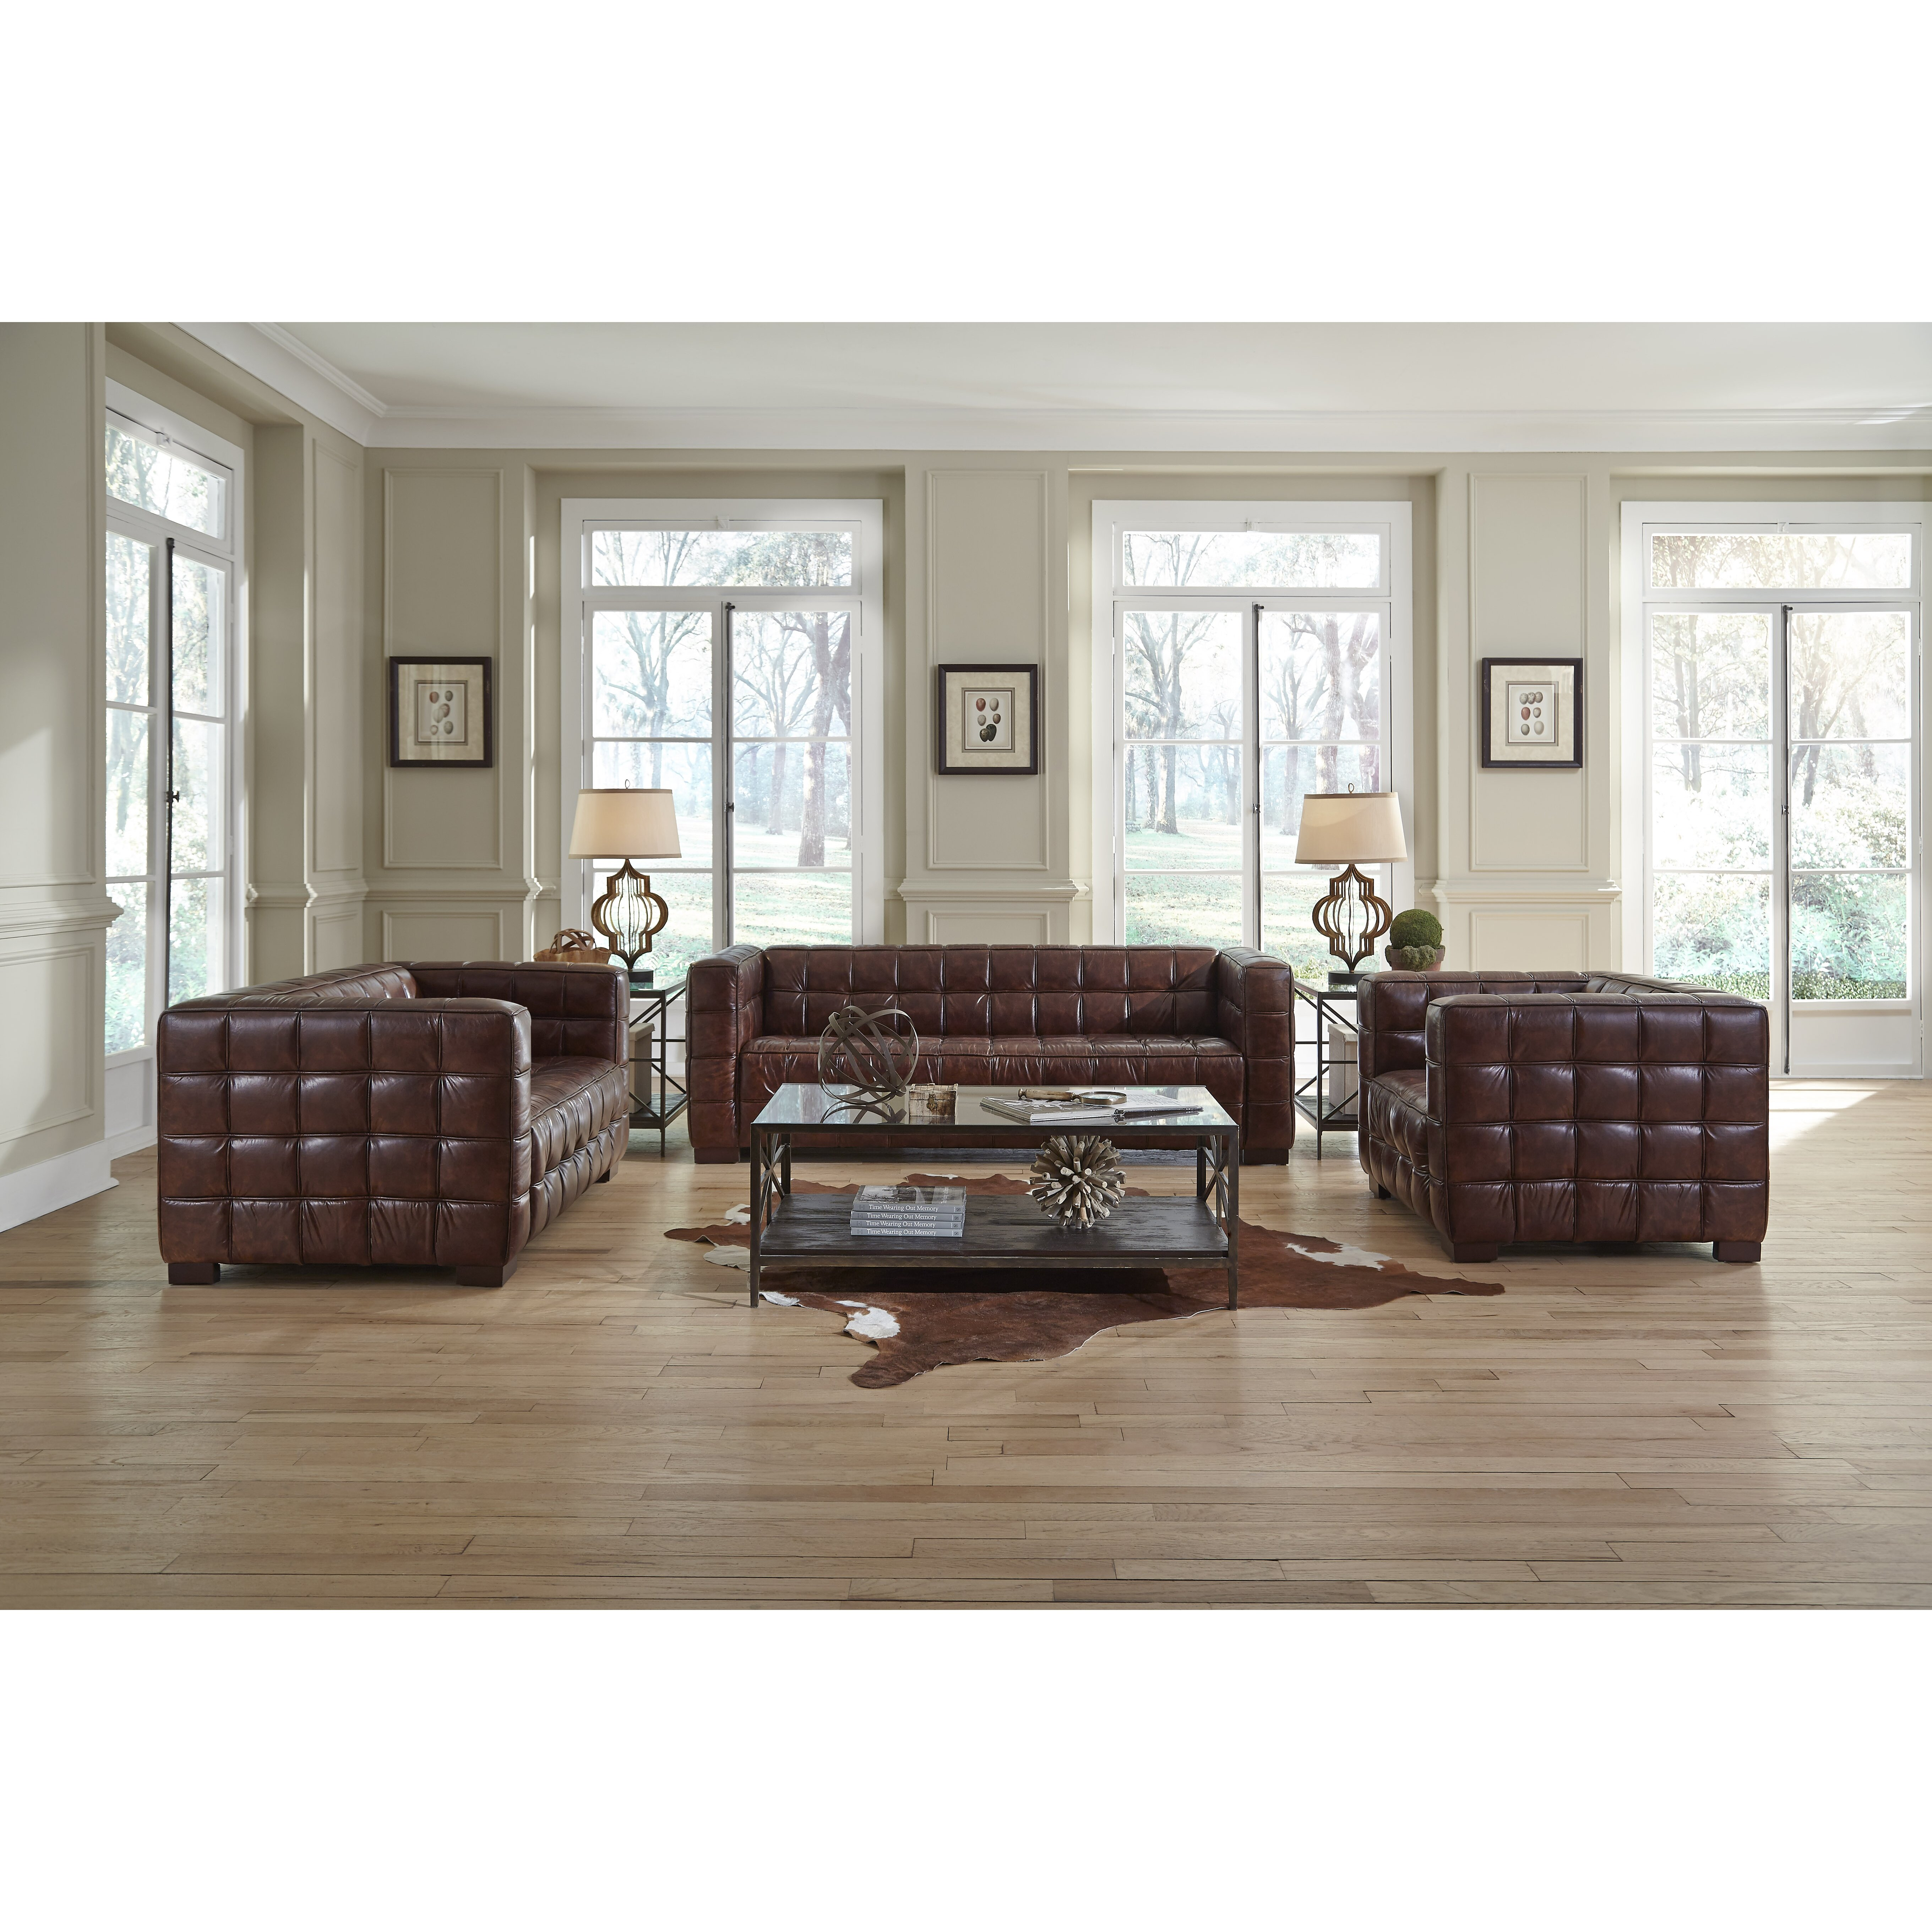 Lazzaro leather nautical living room collection reviews wayfair